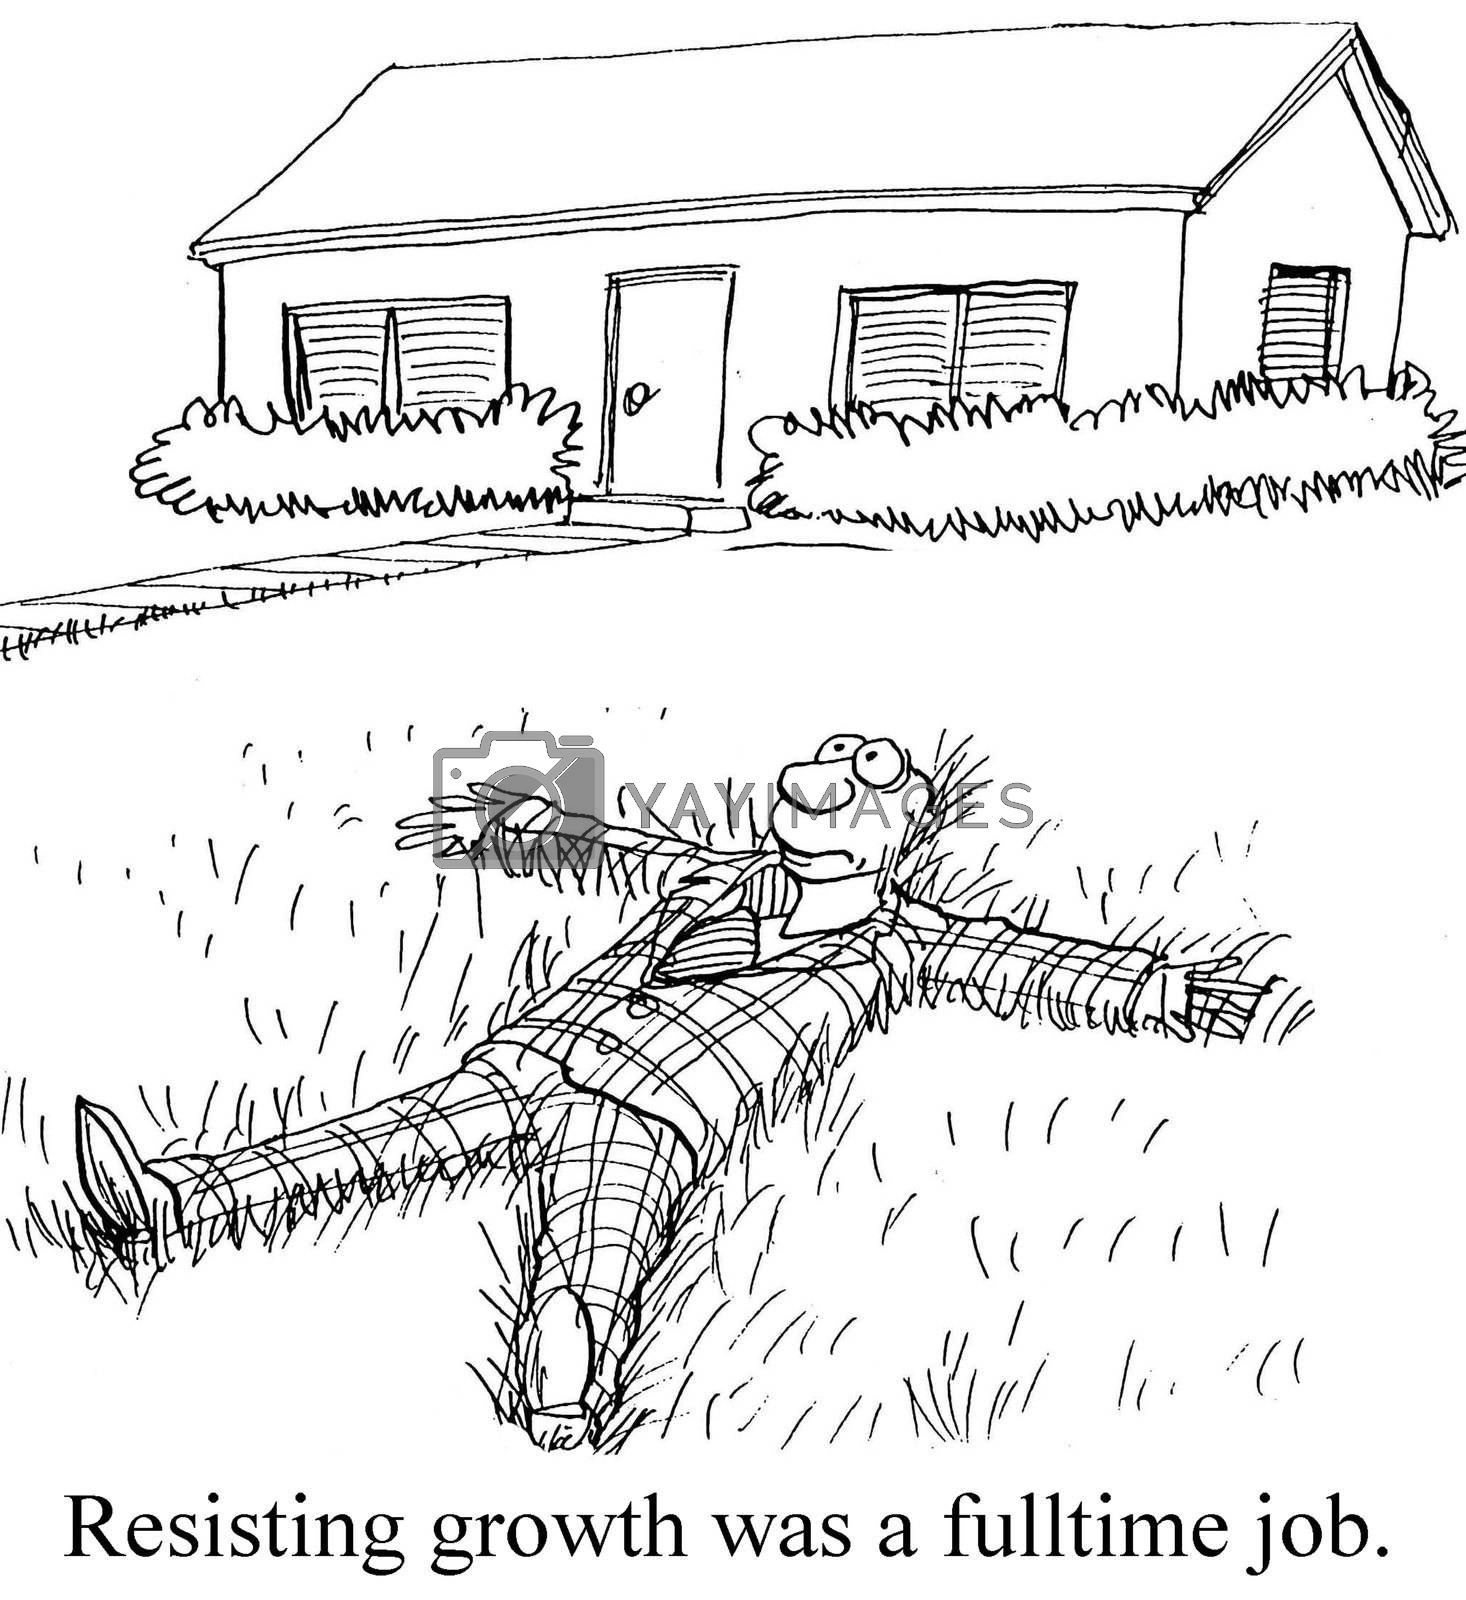 Resisting growth was a fulltime job.